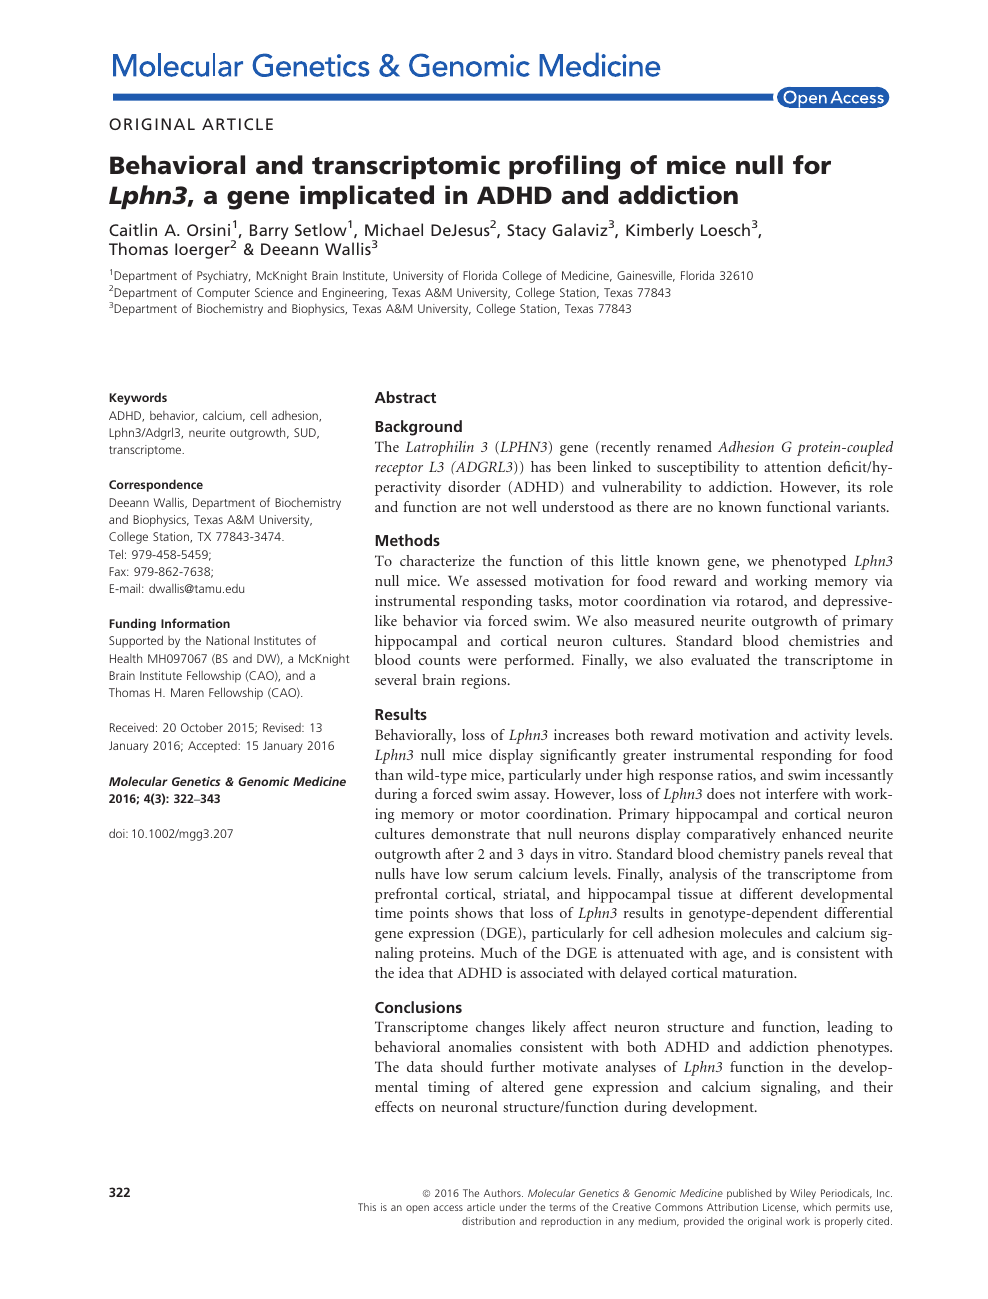 Adhd Real Brain Disorder Or Further >> Behavioral And Transcriptomic Profiling Of Mice Null